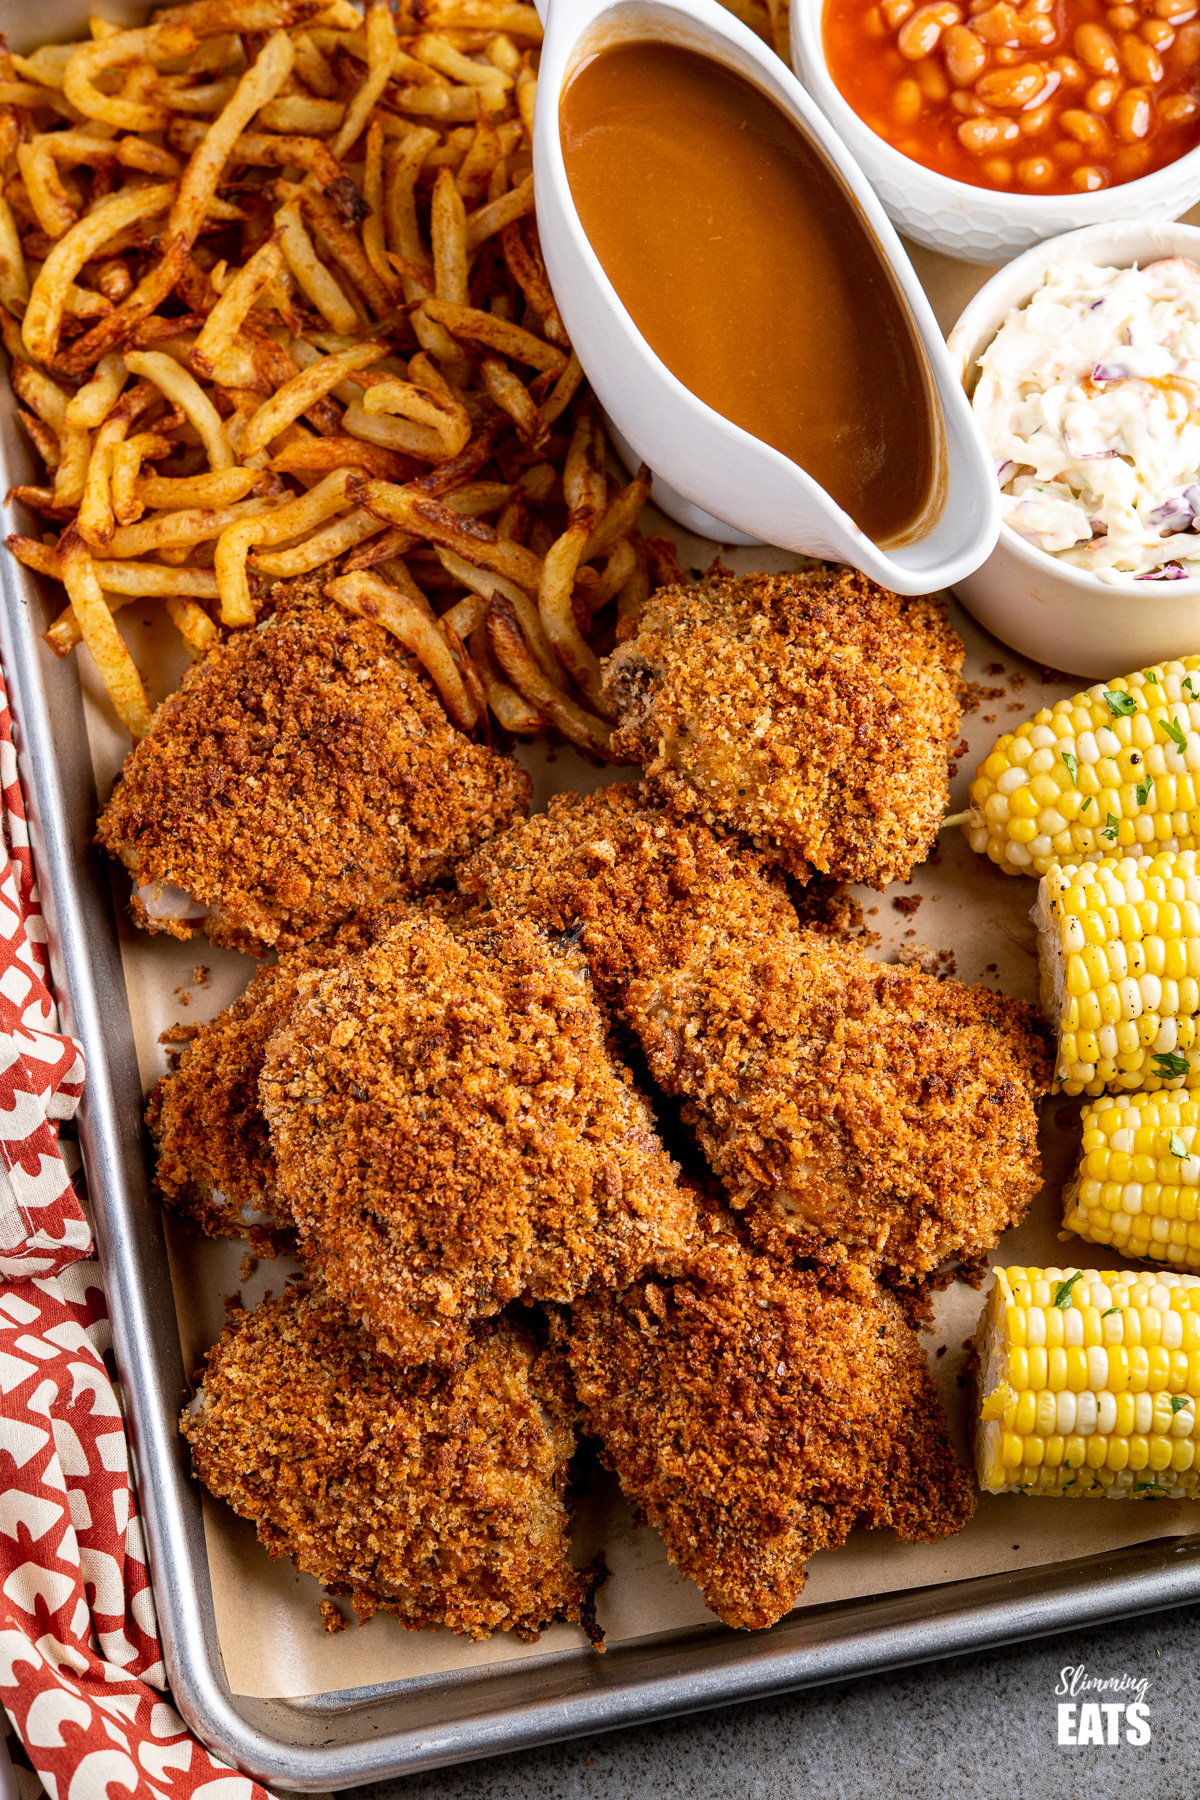 close up of oven baked kfc style chicken feast on a parchment lined baking tray